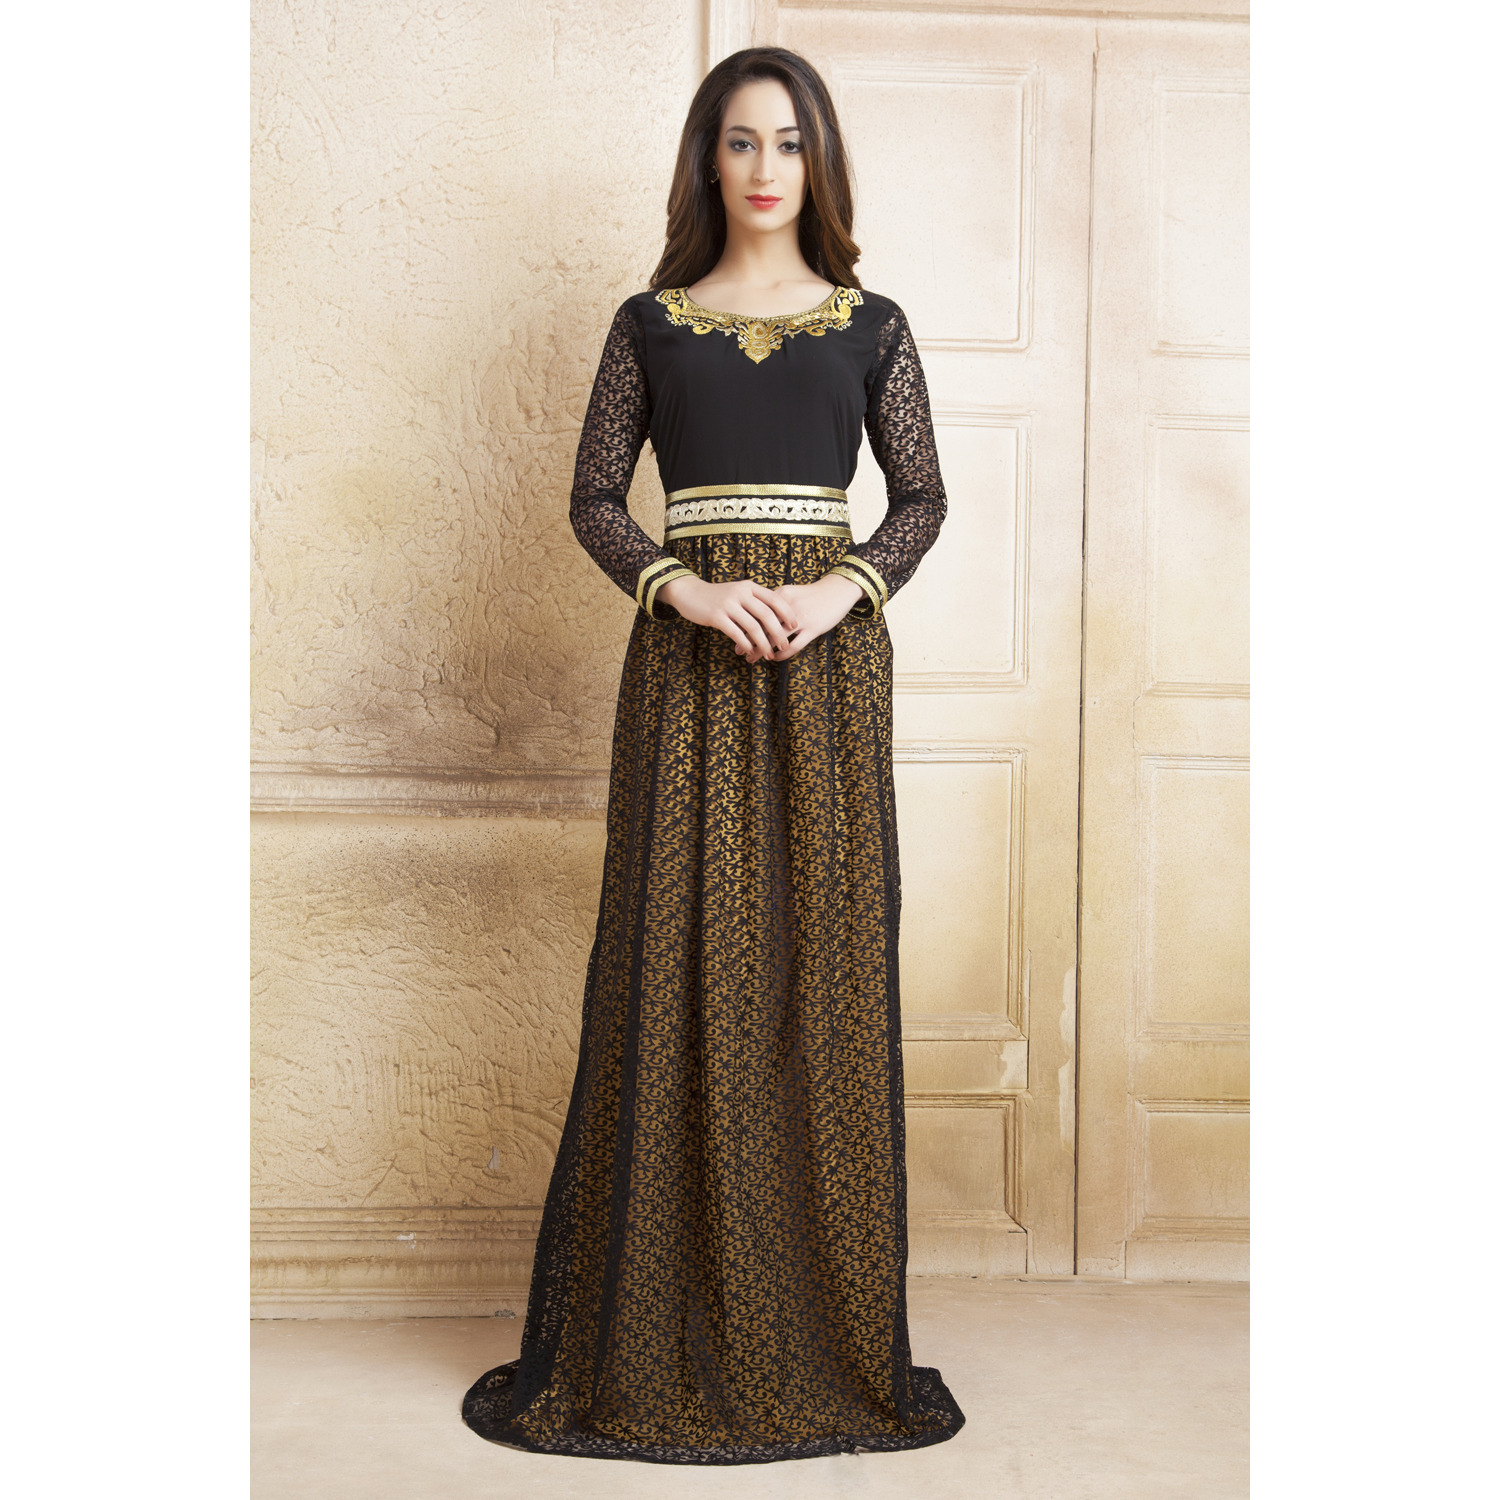 55244e539 Buy Online Yellow and Black color Net Brasso Thread Work Arab Dubai Style  kaftan from USA - Zifiti.com - Page